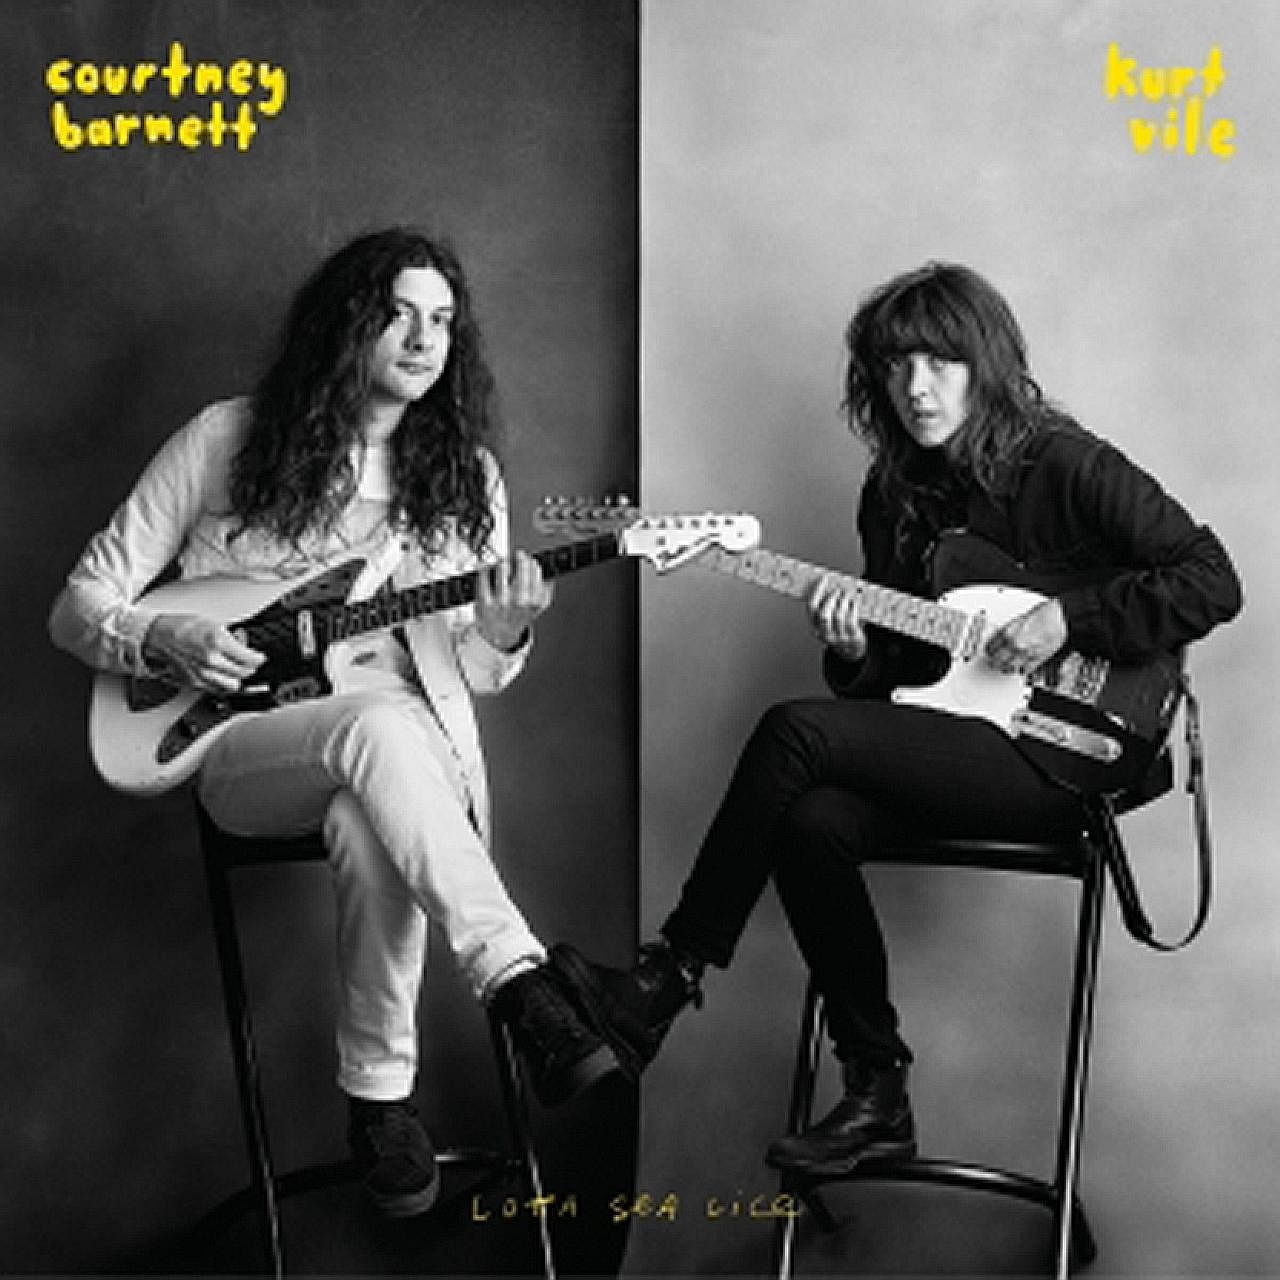 Lotta Sea Lice, a full-length release by Courtney Barnett (above left) and Kurt Vile, perfectly pairs her raspy drawl with his slacker twang.